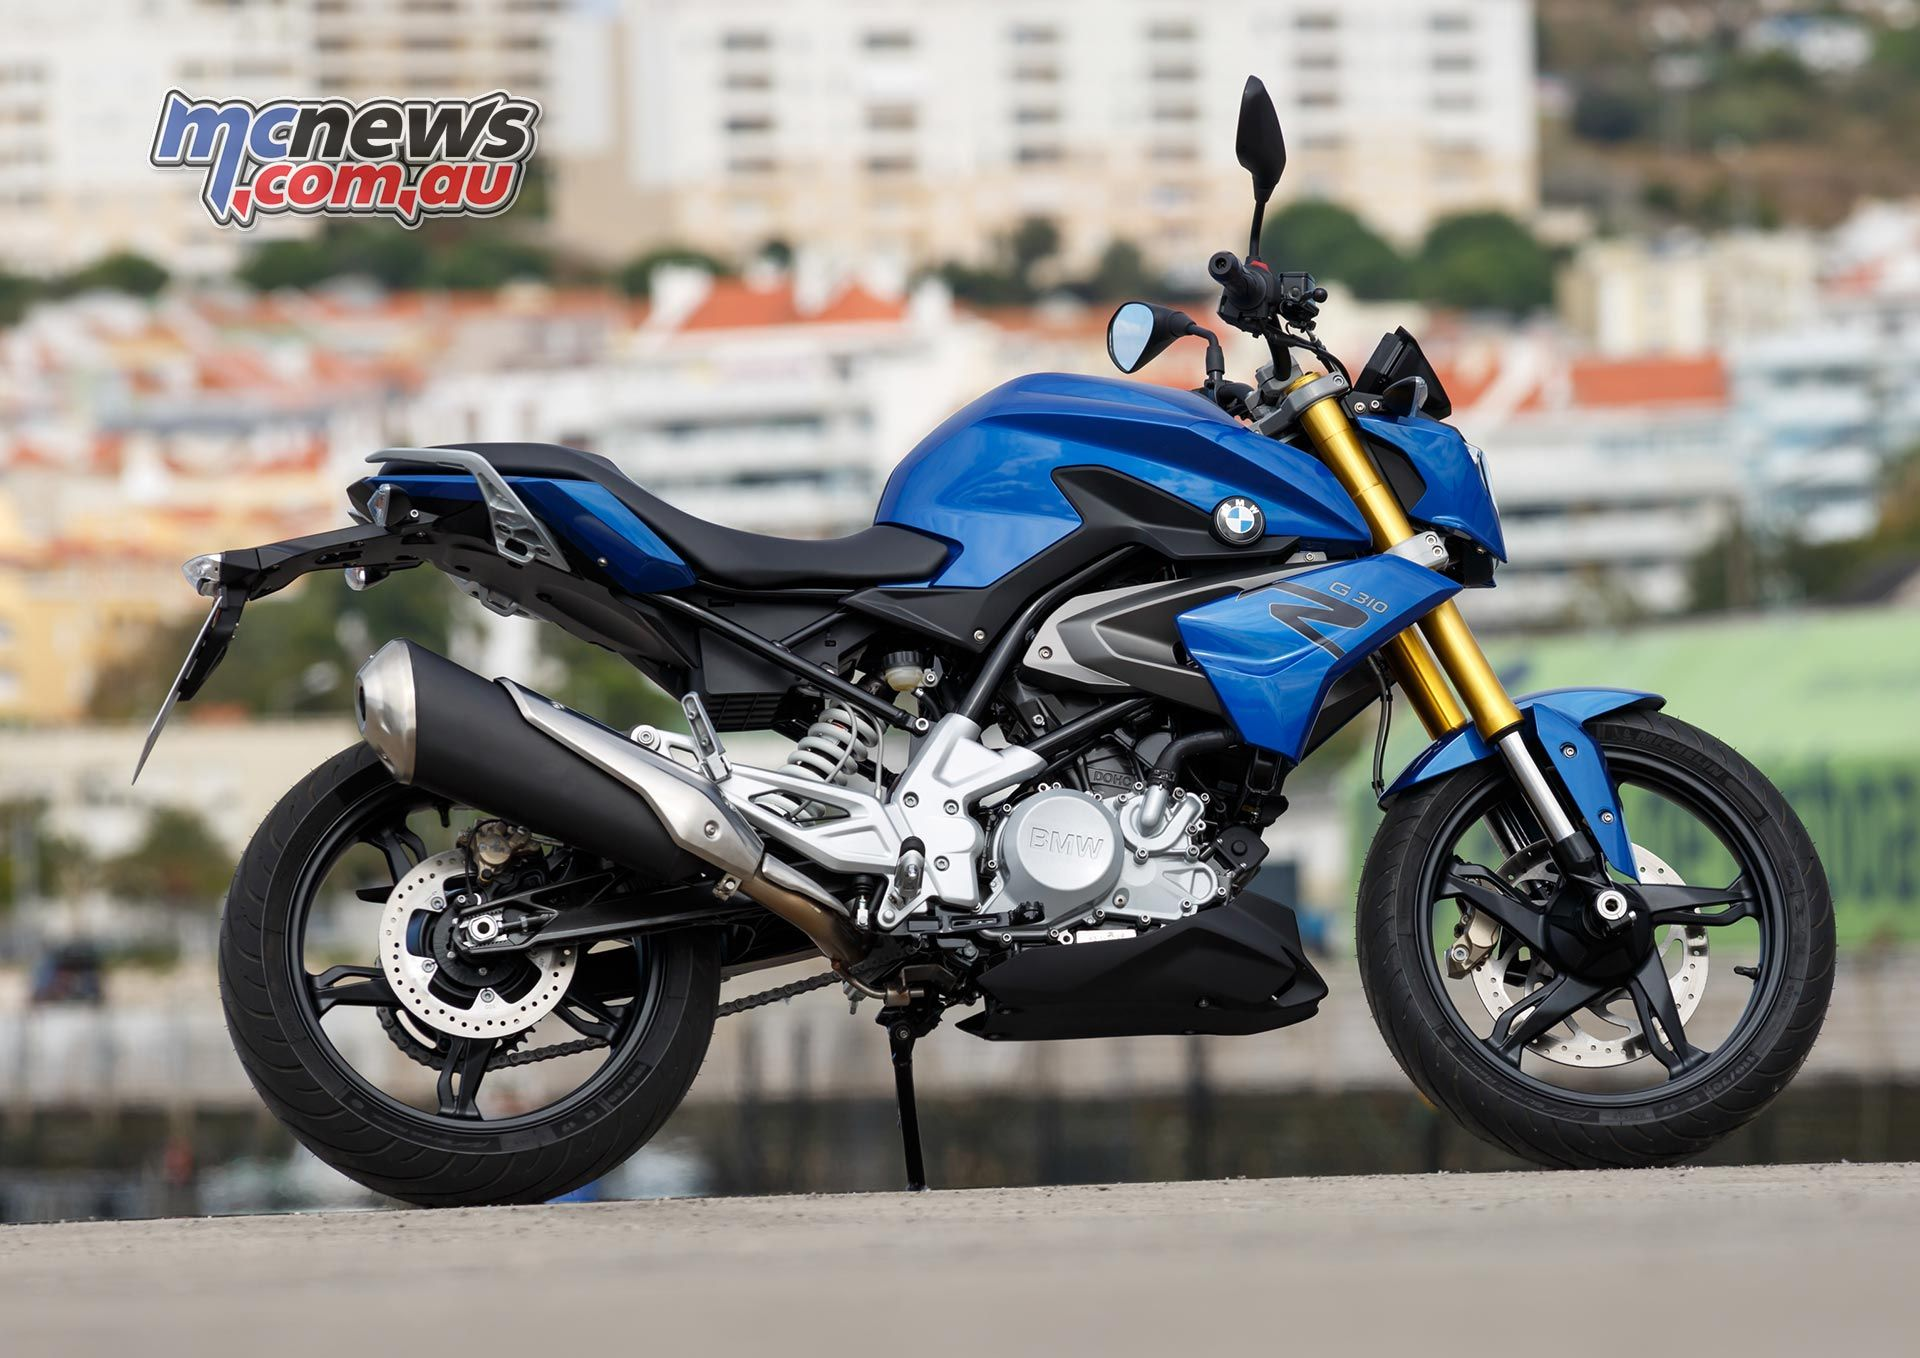 Pin On Mcnews Com Au Motorcycle News Feed